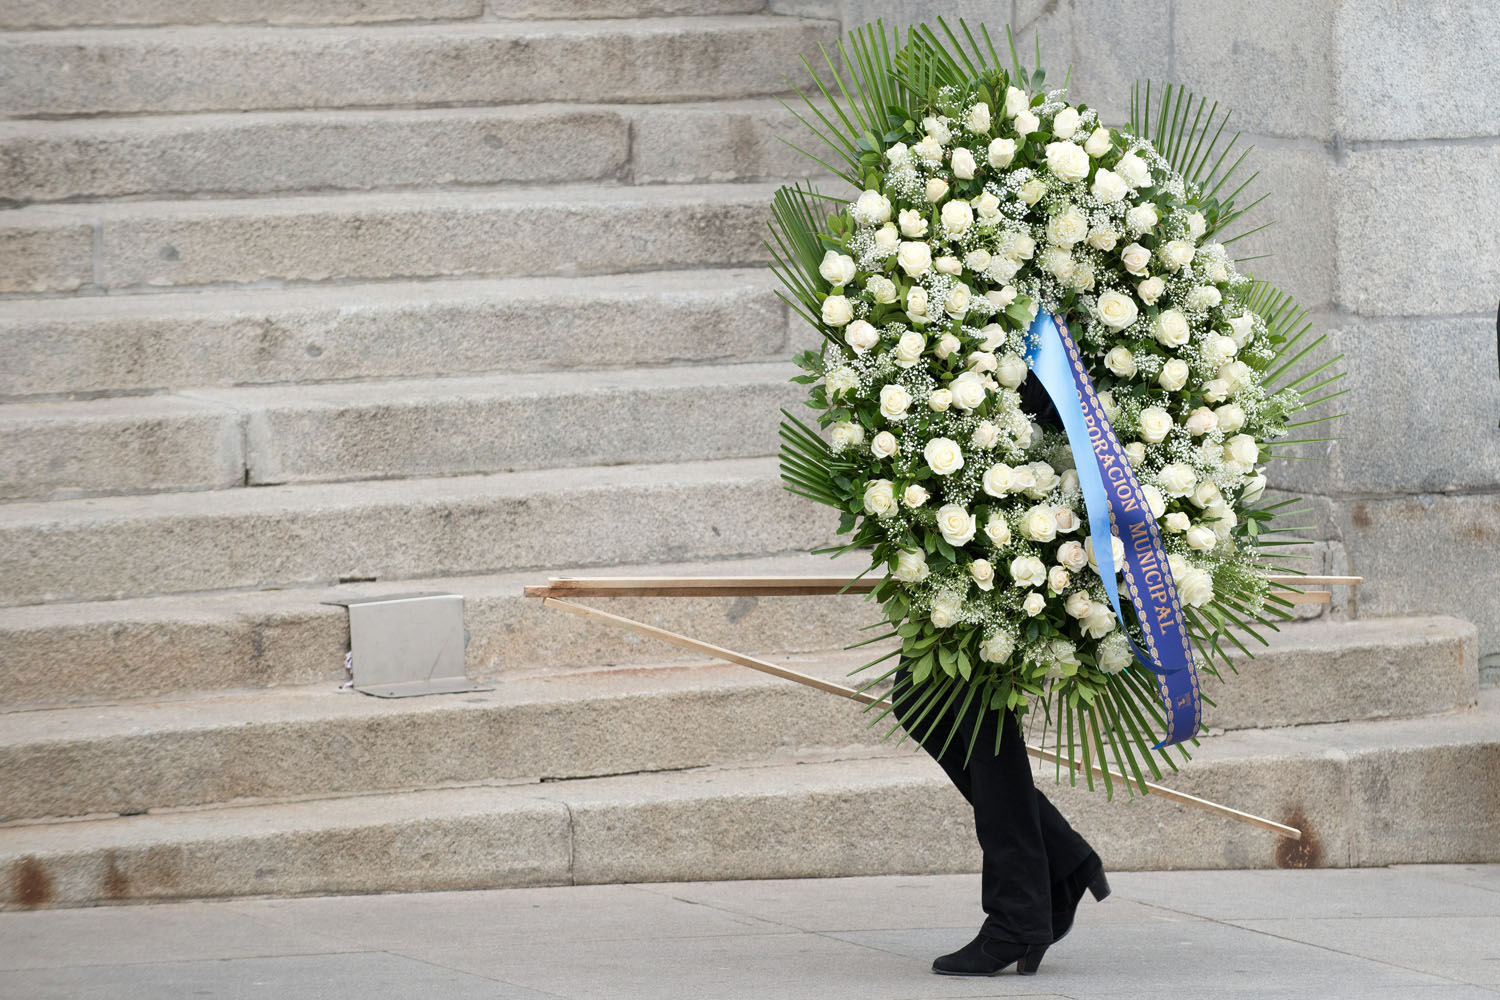 Mar. 24, 2014. A mourner carries flowers for the funeral of former Spanish president Adolfo Suarez, who led Spain to democracy after decades of dictatorship.